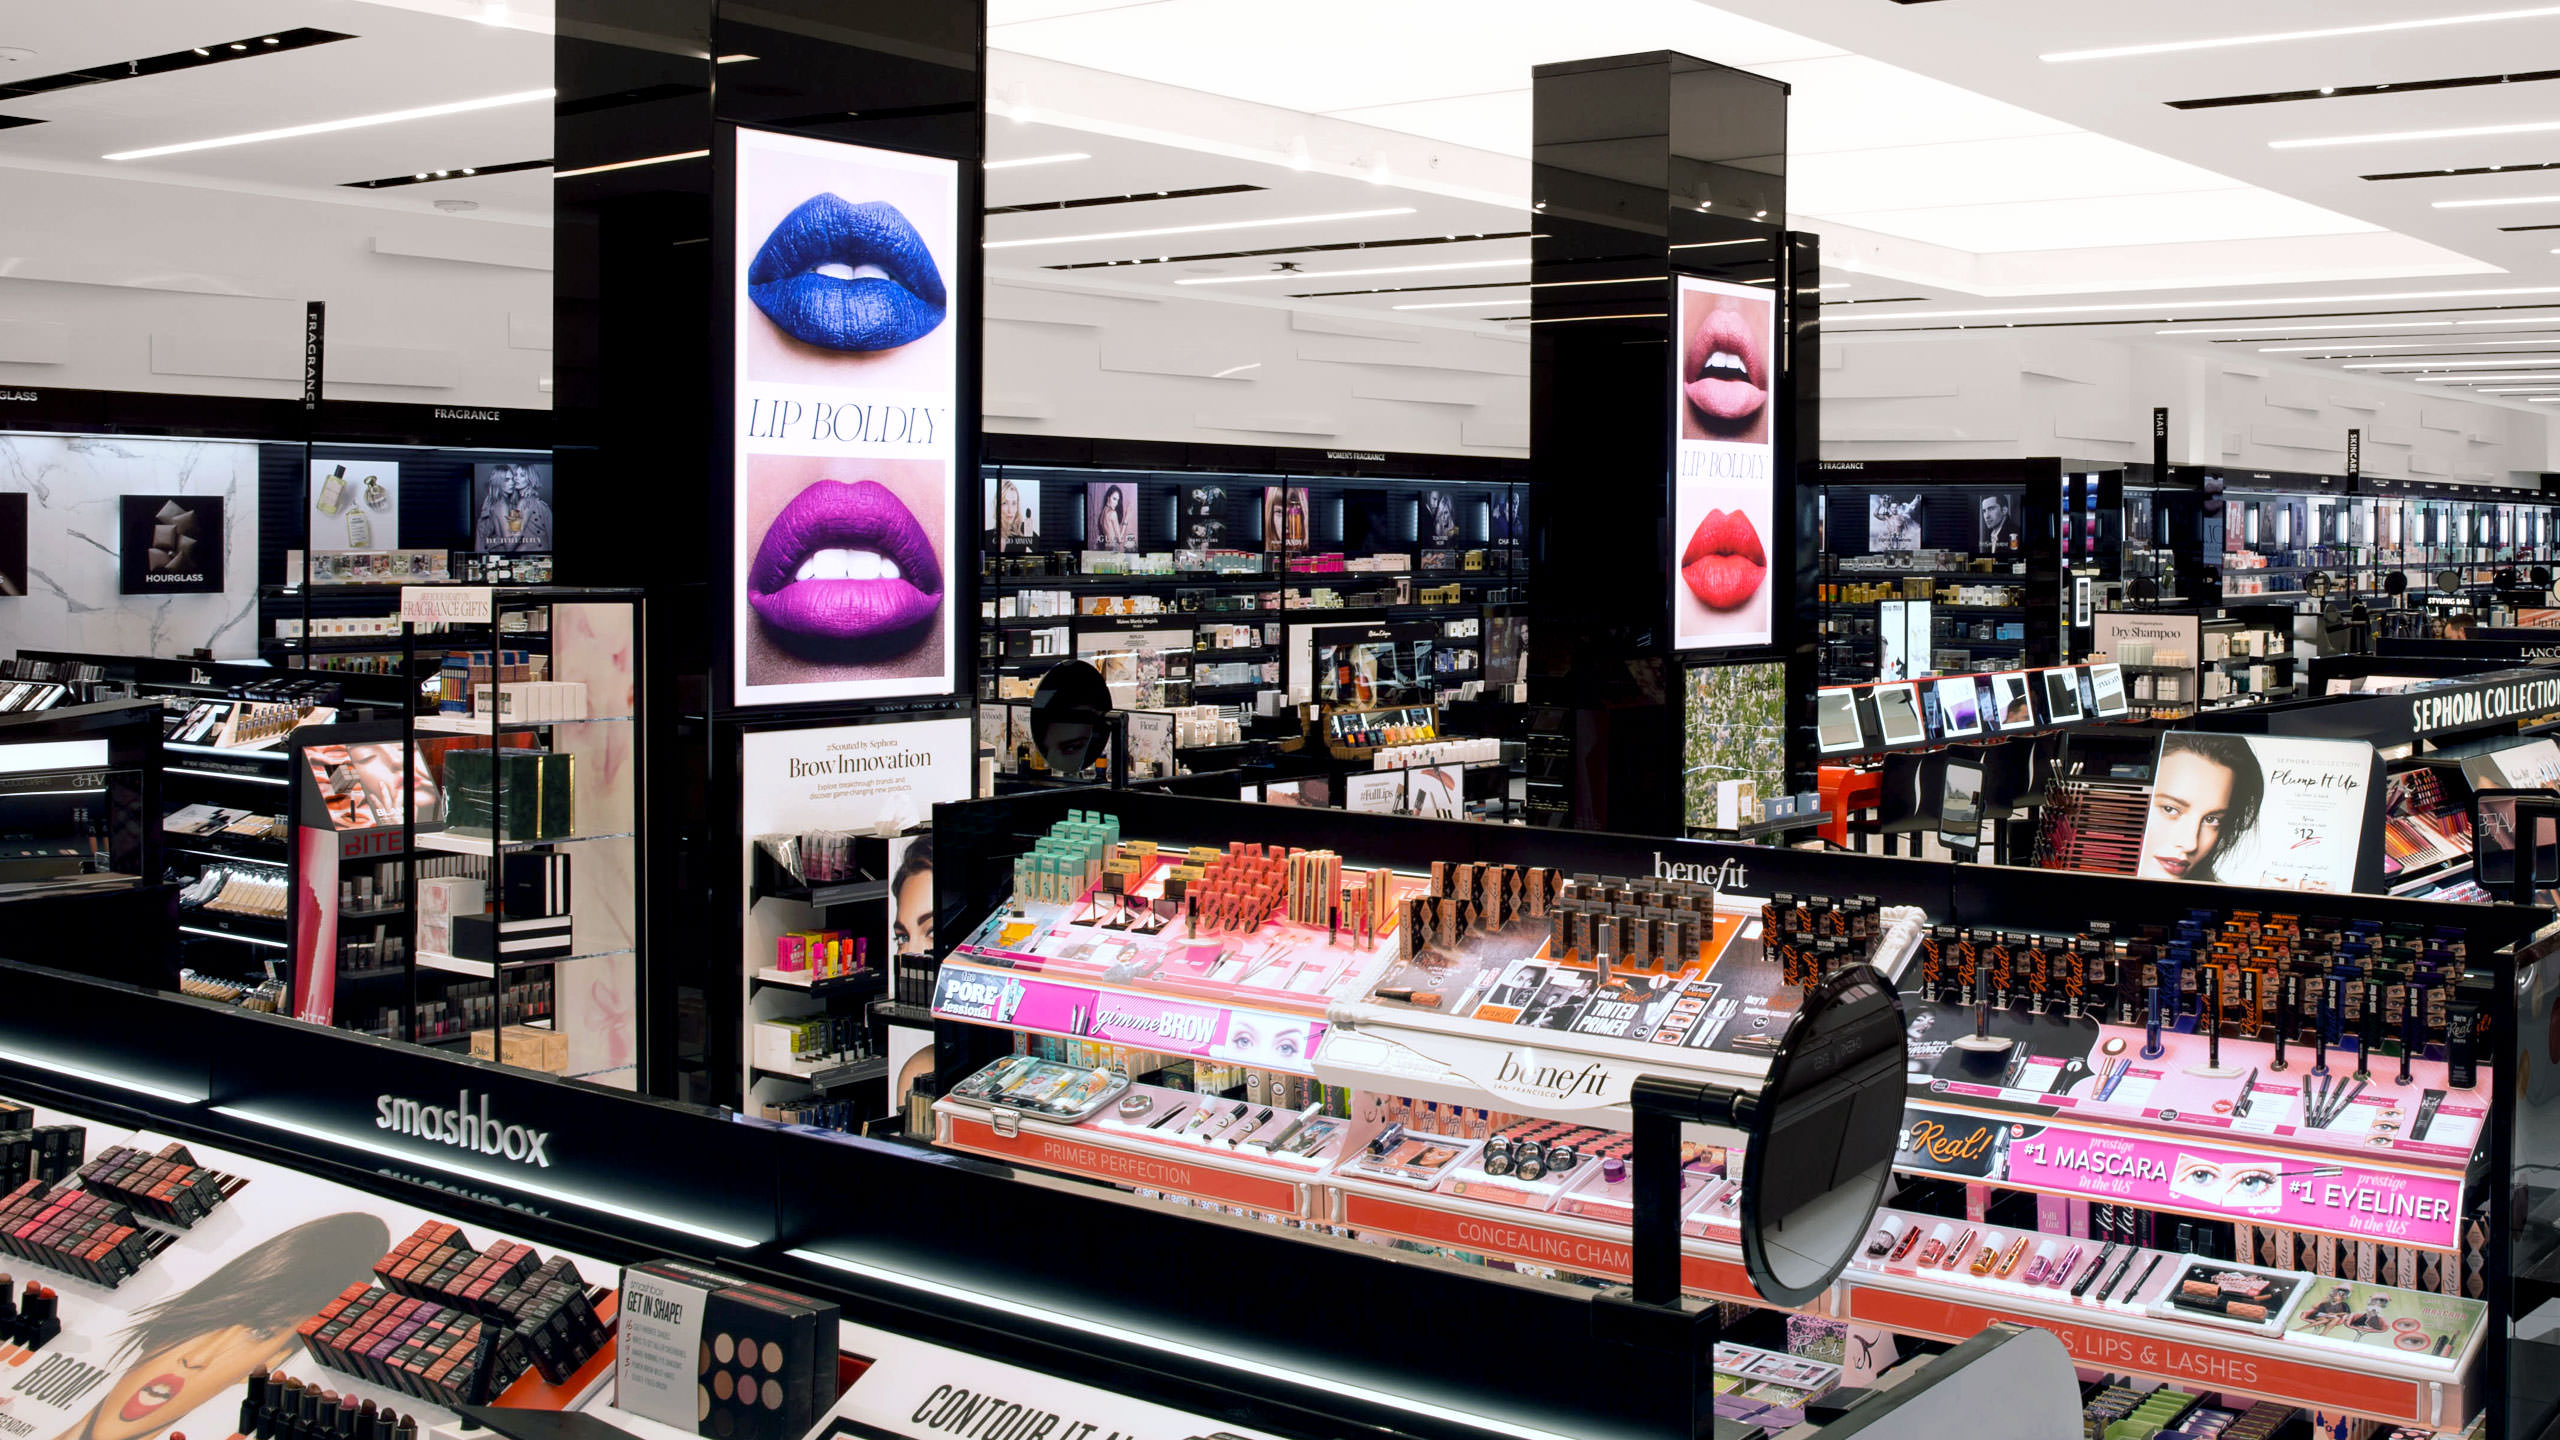 sephora case study Giving sephora collection a mobile-first makeover we gave sephora's in-house label a digital makeover that drives sales with a host of fun next case study.